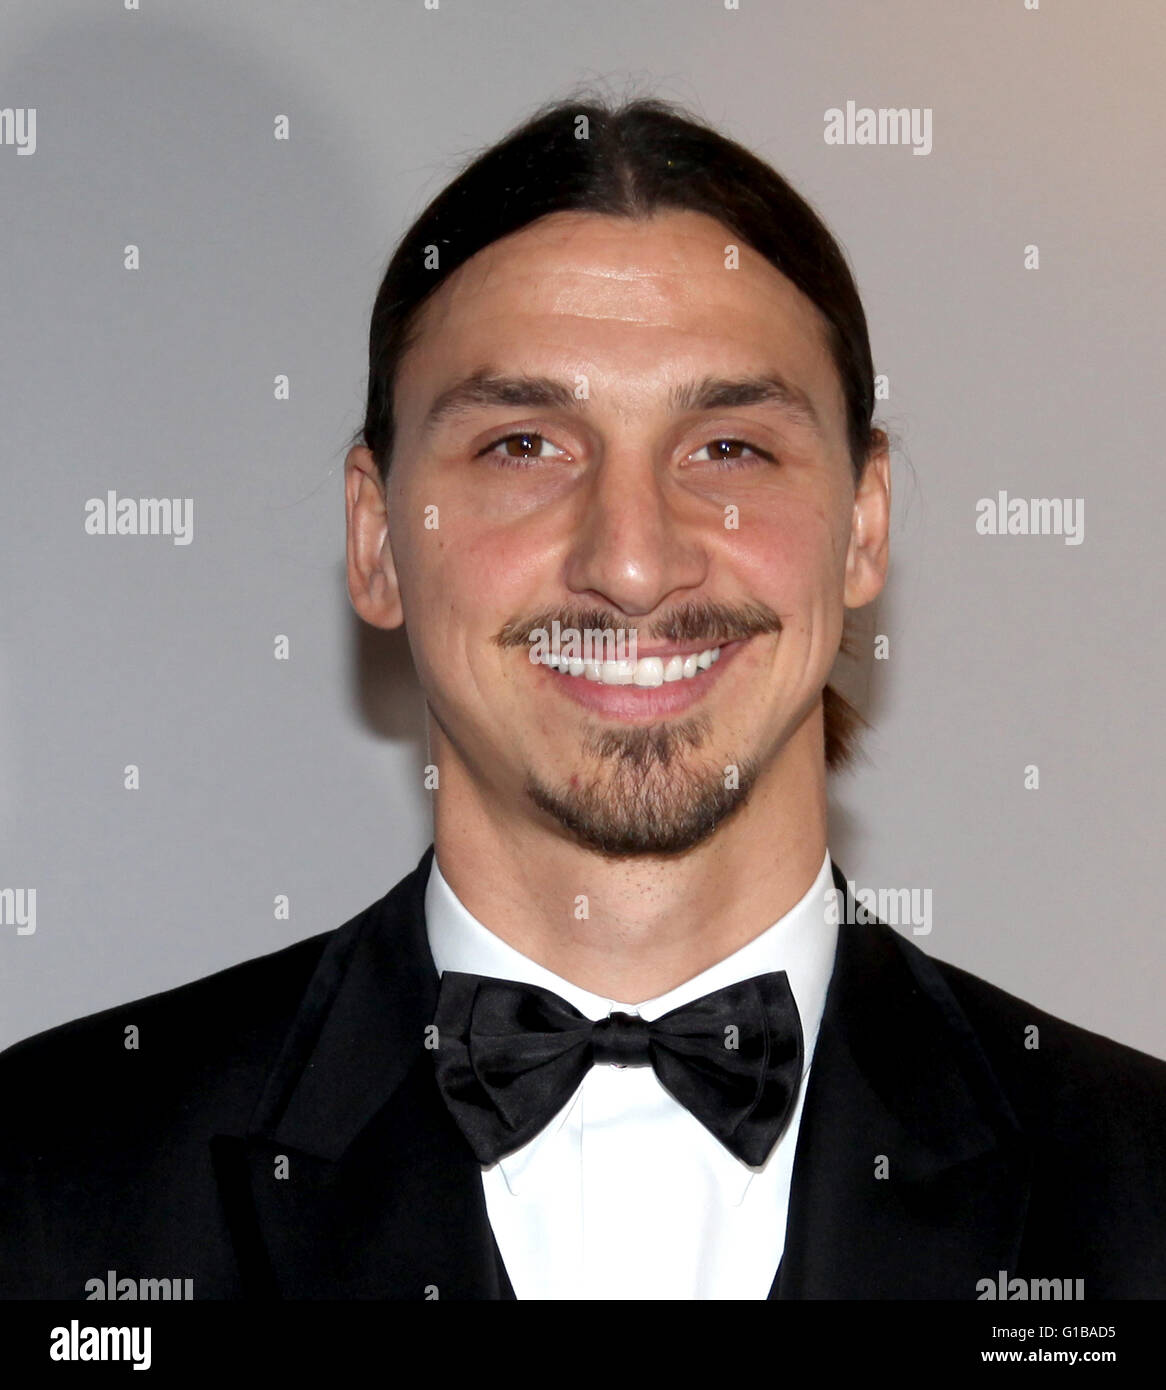 ZLATAN IBRAHIMOVIC Swedish professional football player - Stock Image